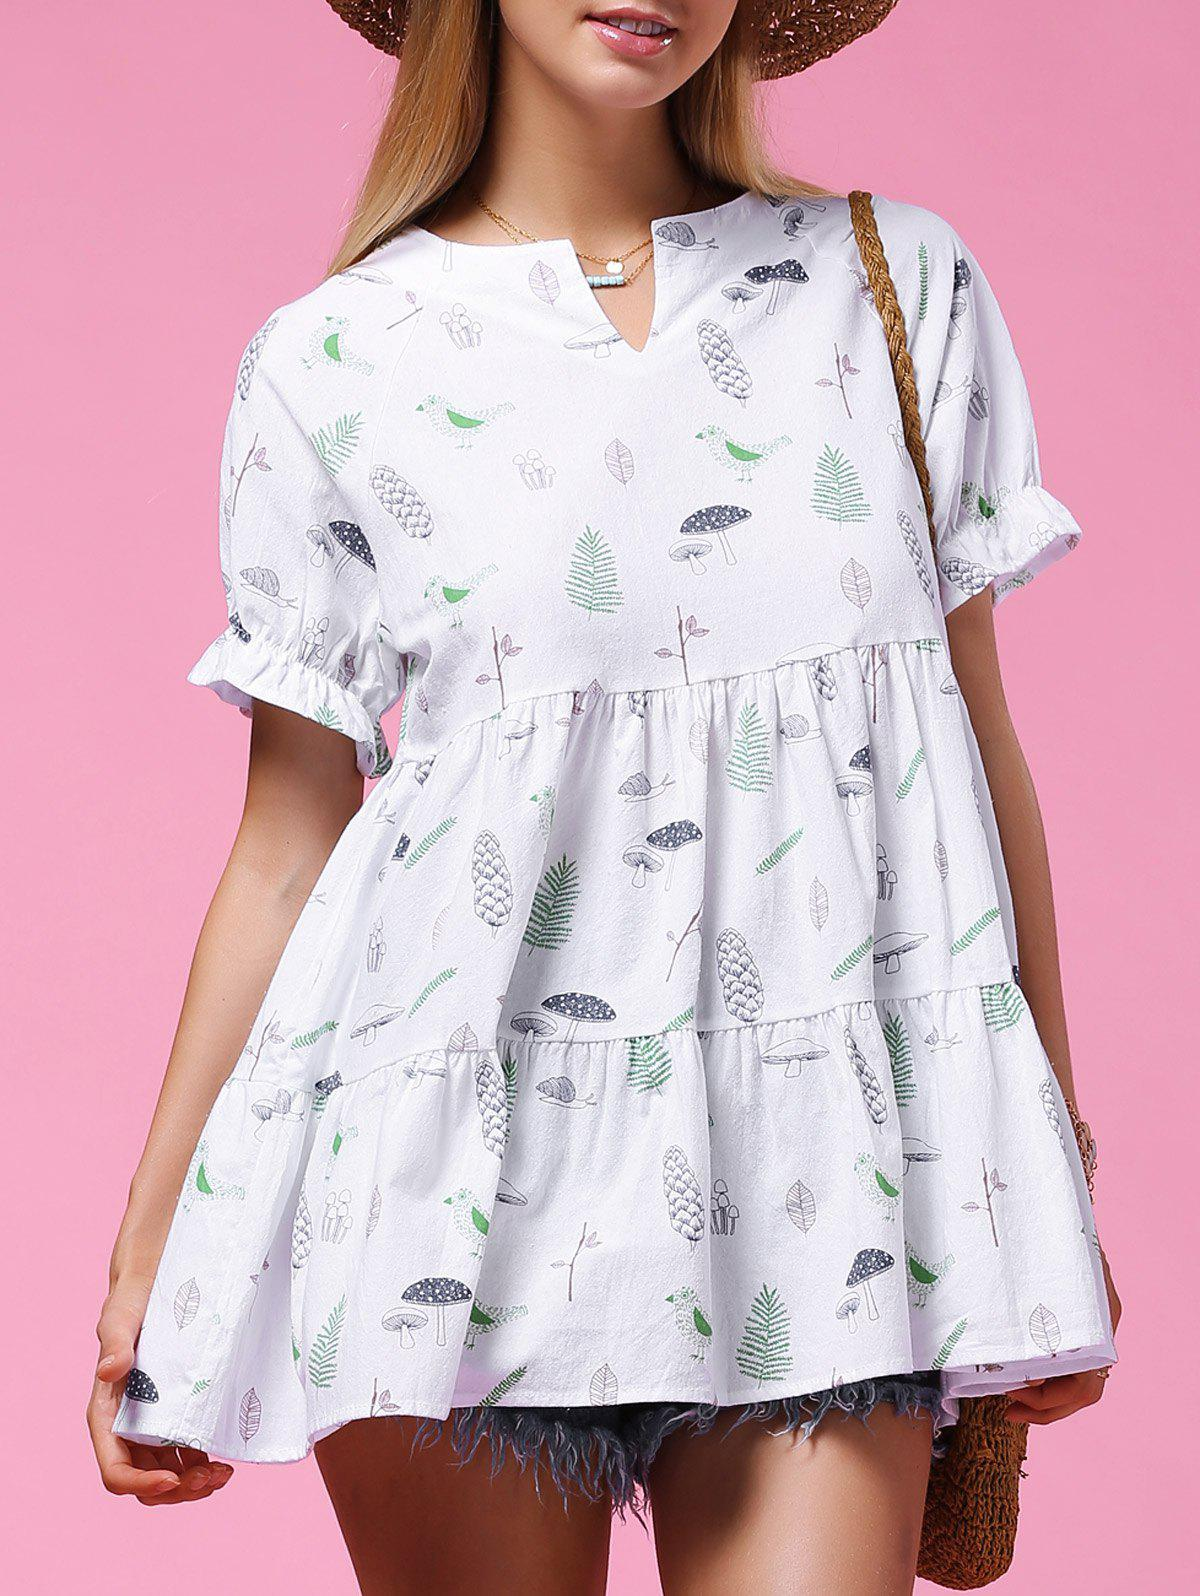 Sweet Women's Short Sleeve Plant Print Flounced Blouse